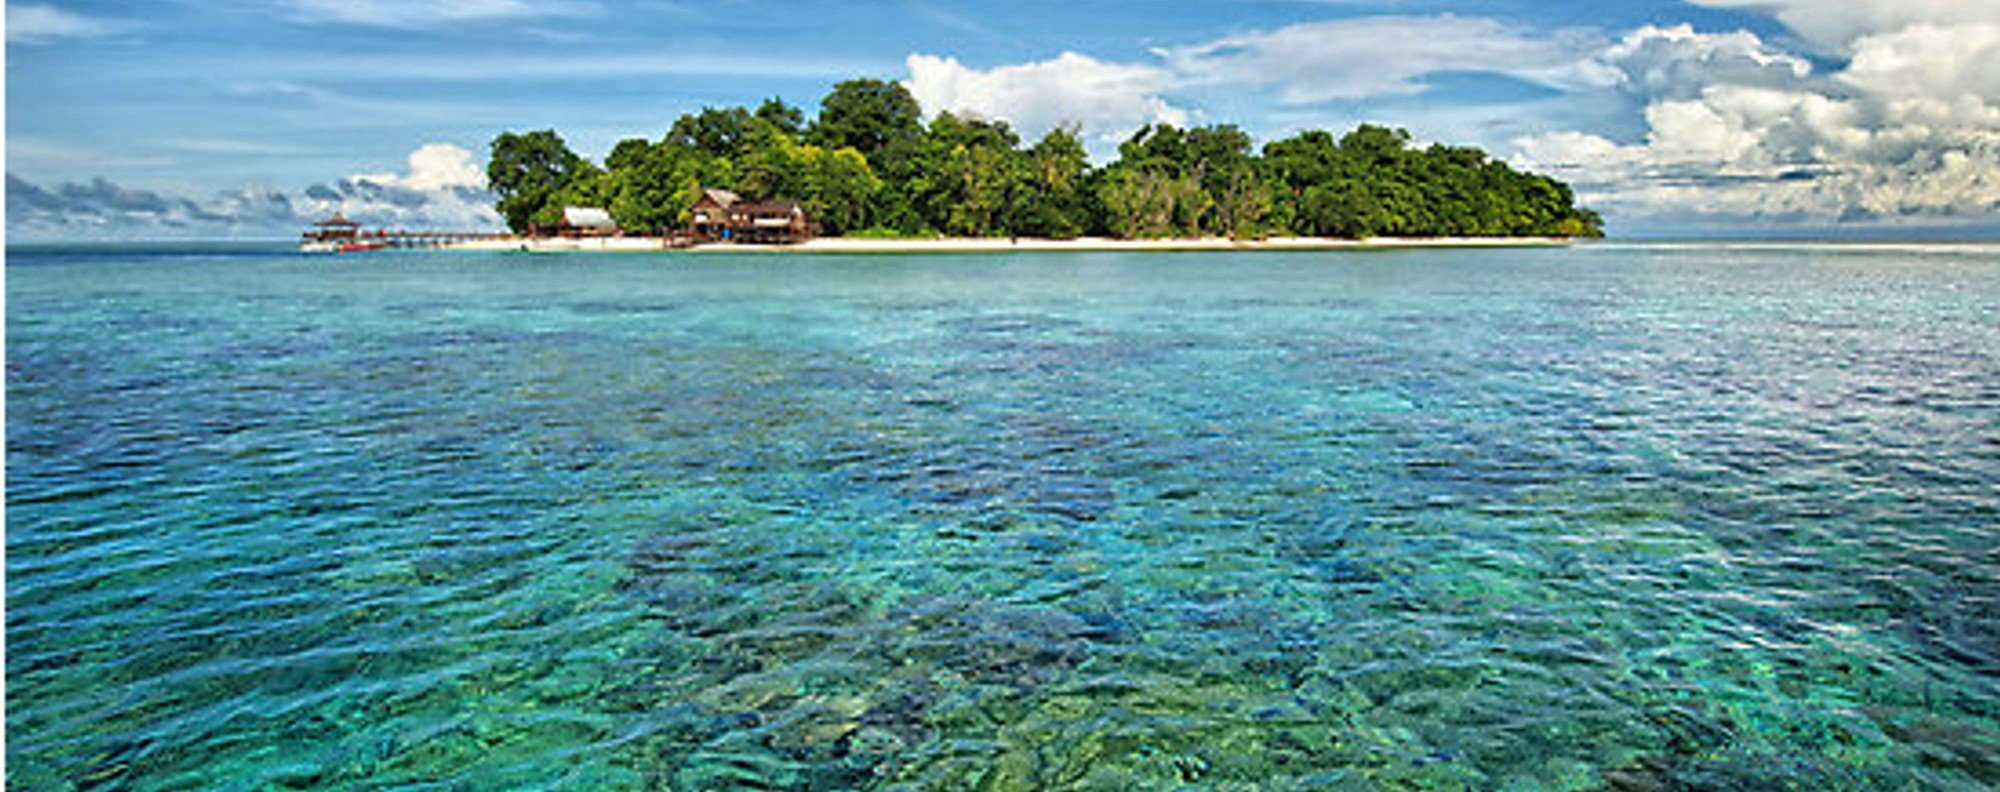 Sipadan Island off the east coast of Sabah. Photo: Karim Raslan